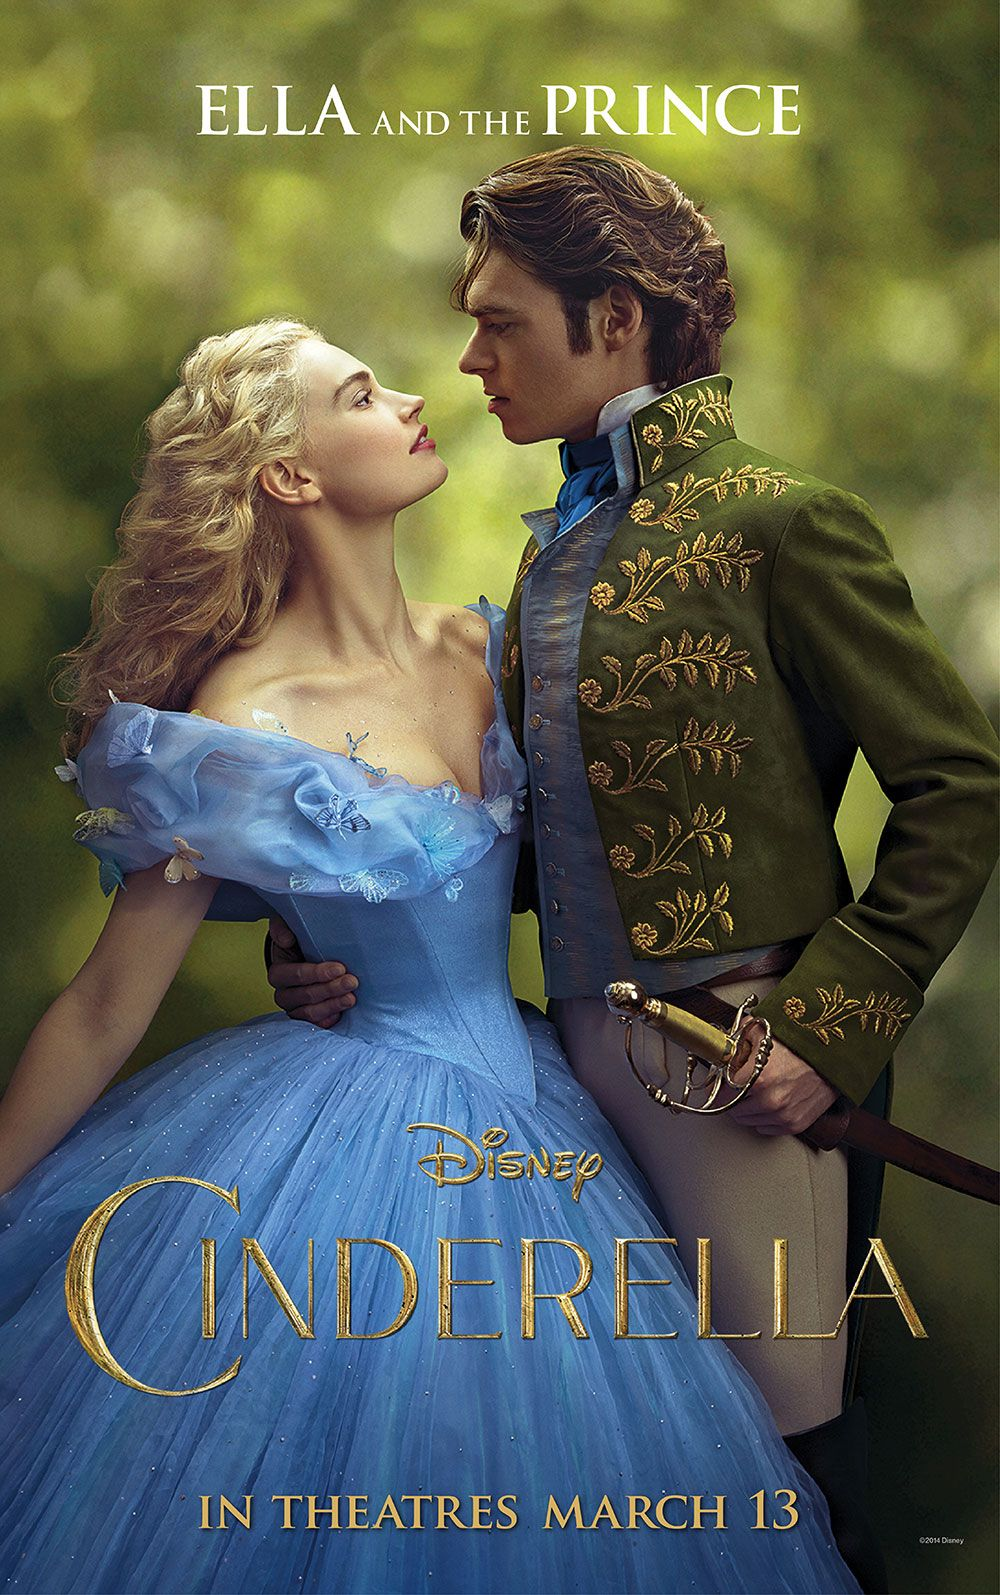 See The Lovely New Character Posters For Cinderella Cinderela Filme Posteres De Filmes Princesas